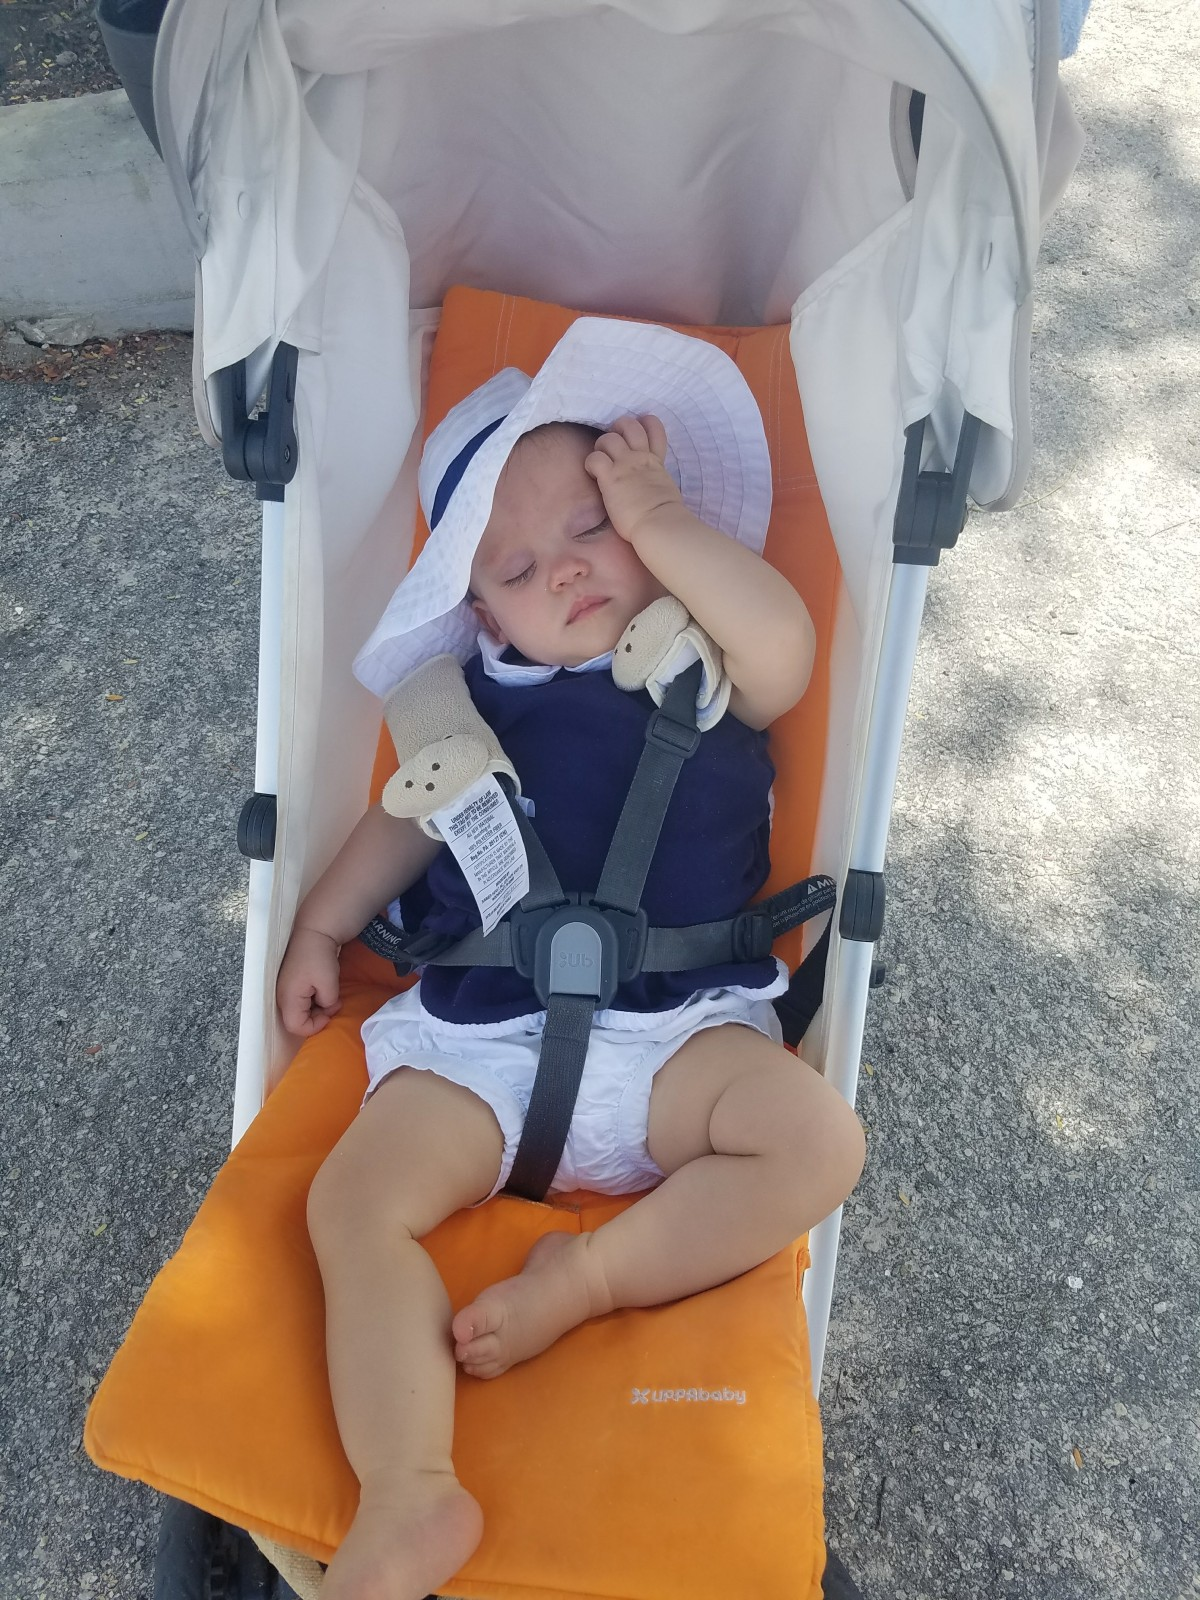 Travels with Baby Essentials: Getting Your Little One from Point A to PointB